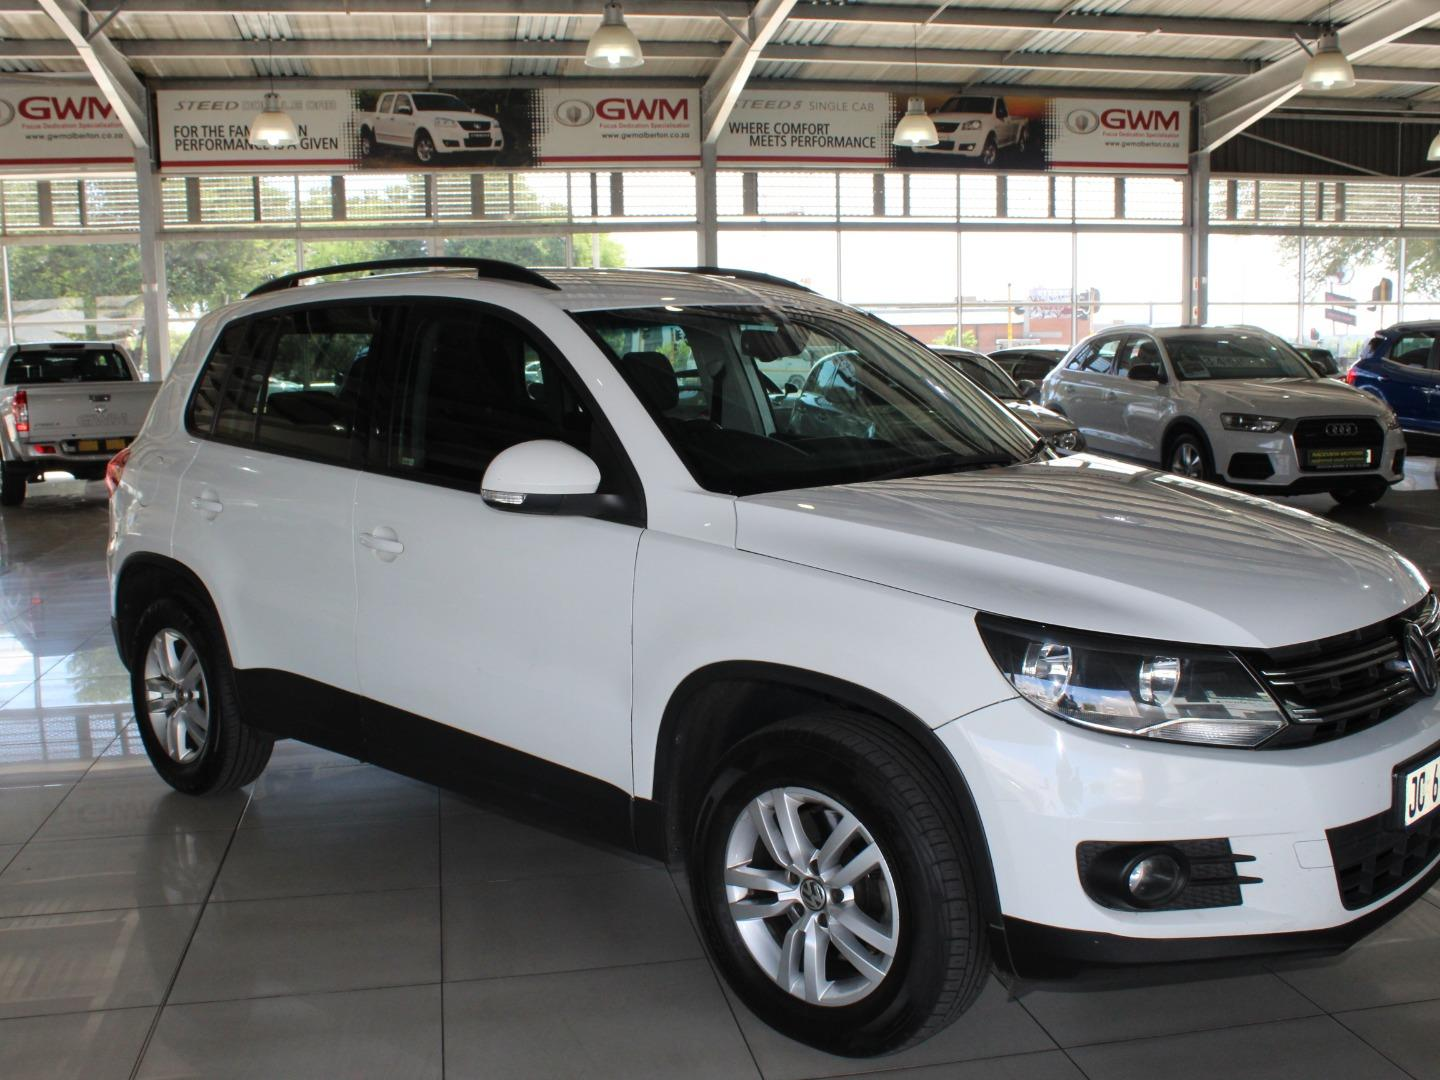 2015 Volkswagen Tiguan 1.4TSI 118kW Trend-and-Fun